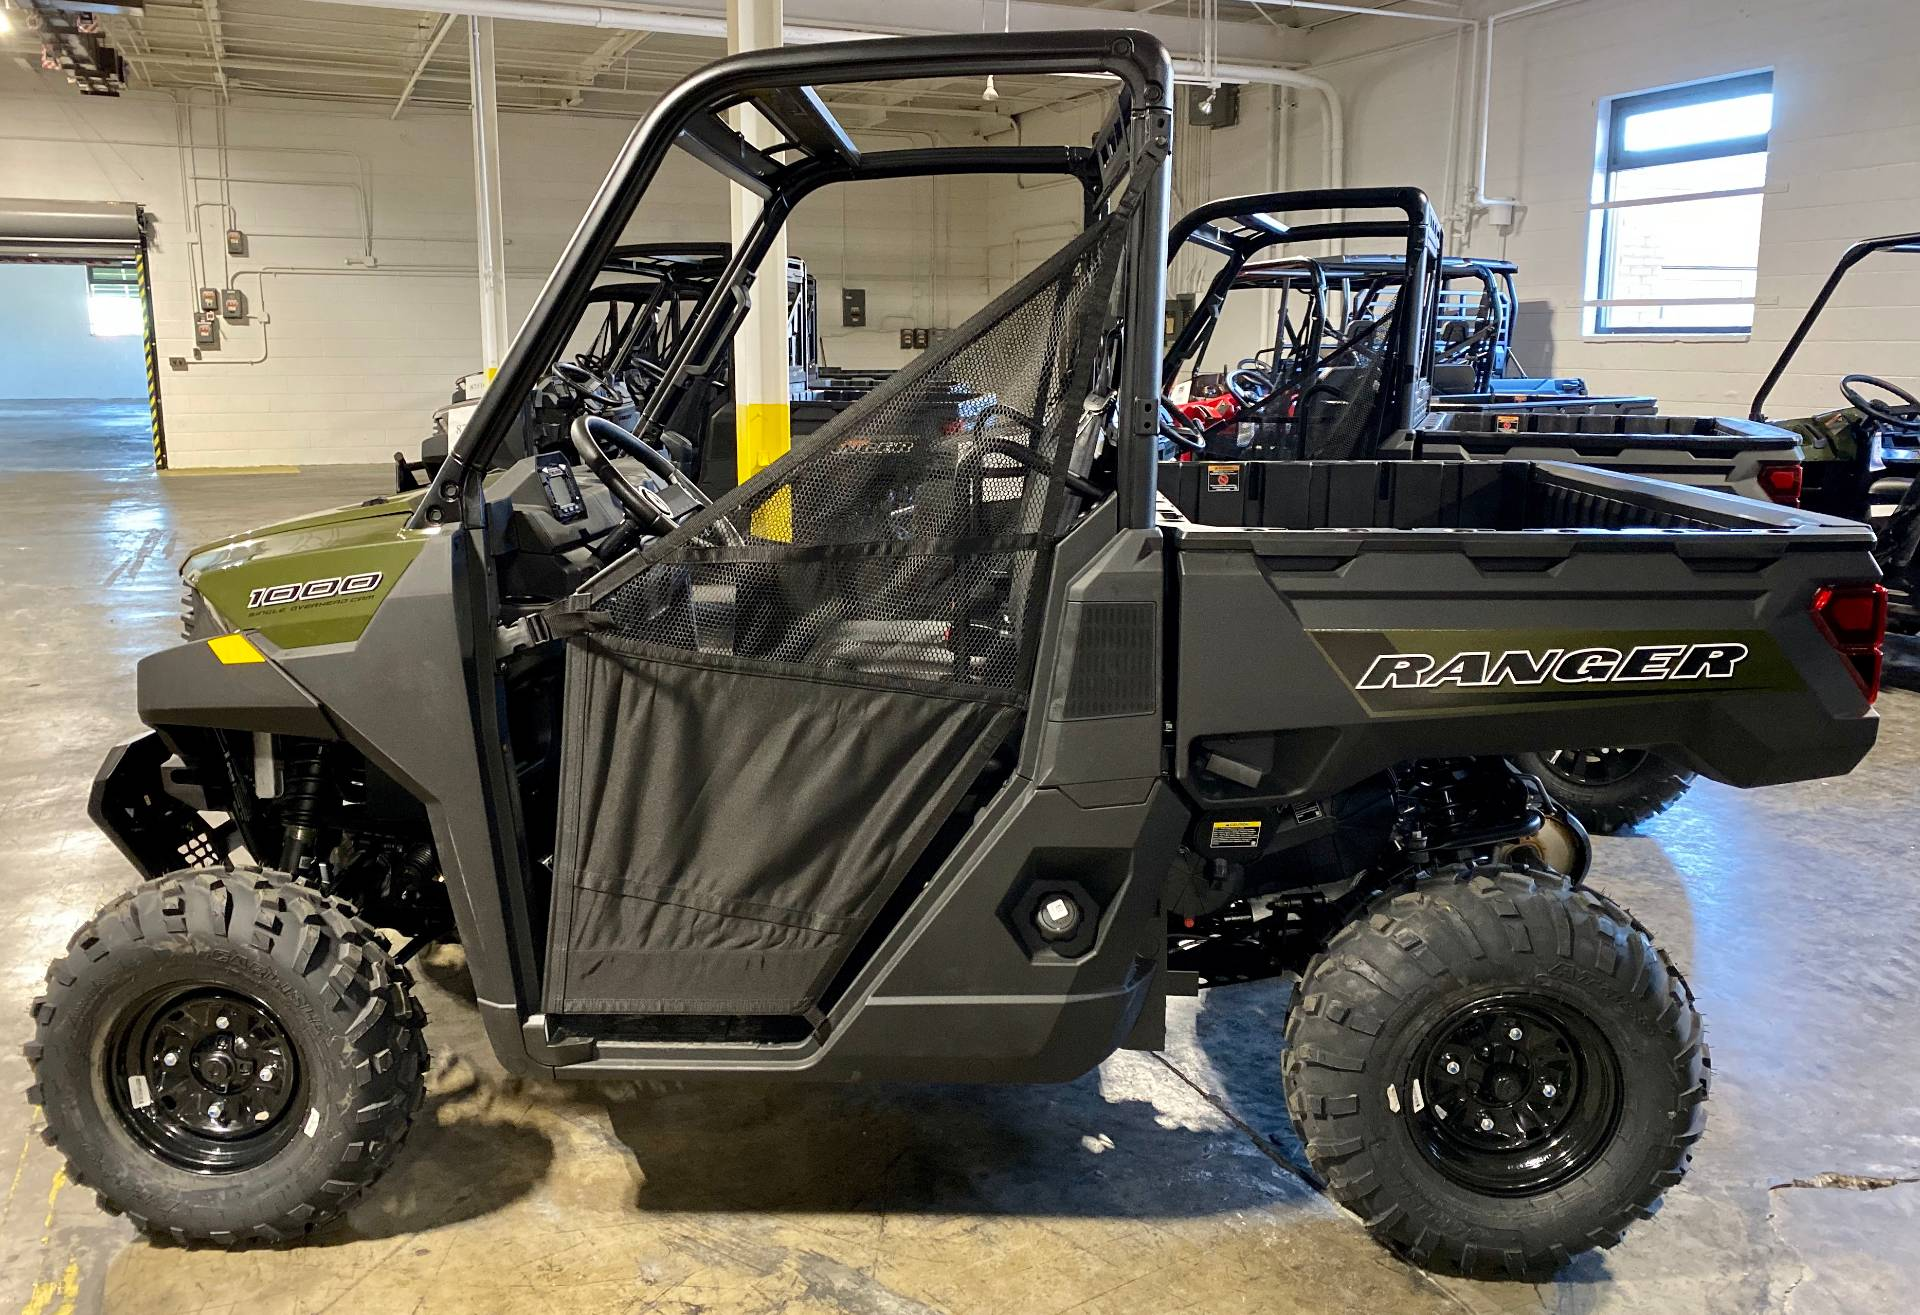 2020 Polaris Ranger 1000 EPS in Statesville, North Carolina - Photo 4